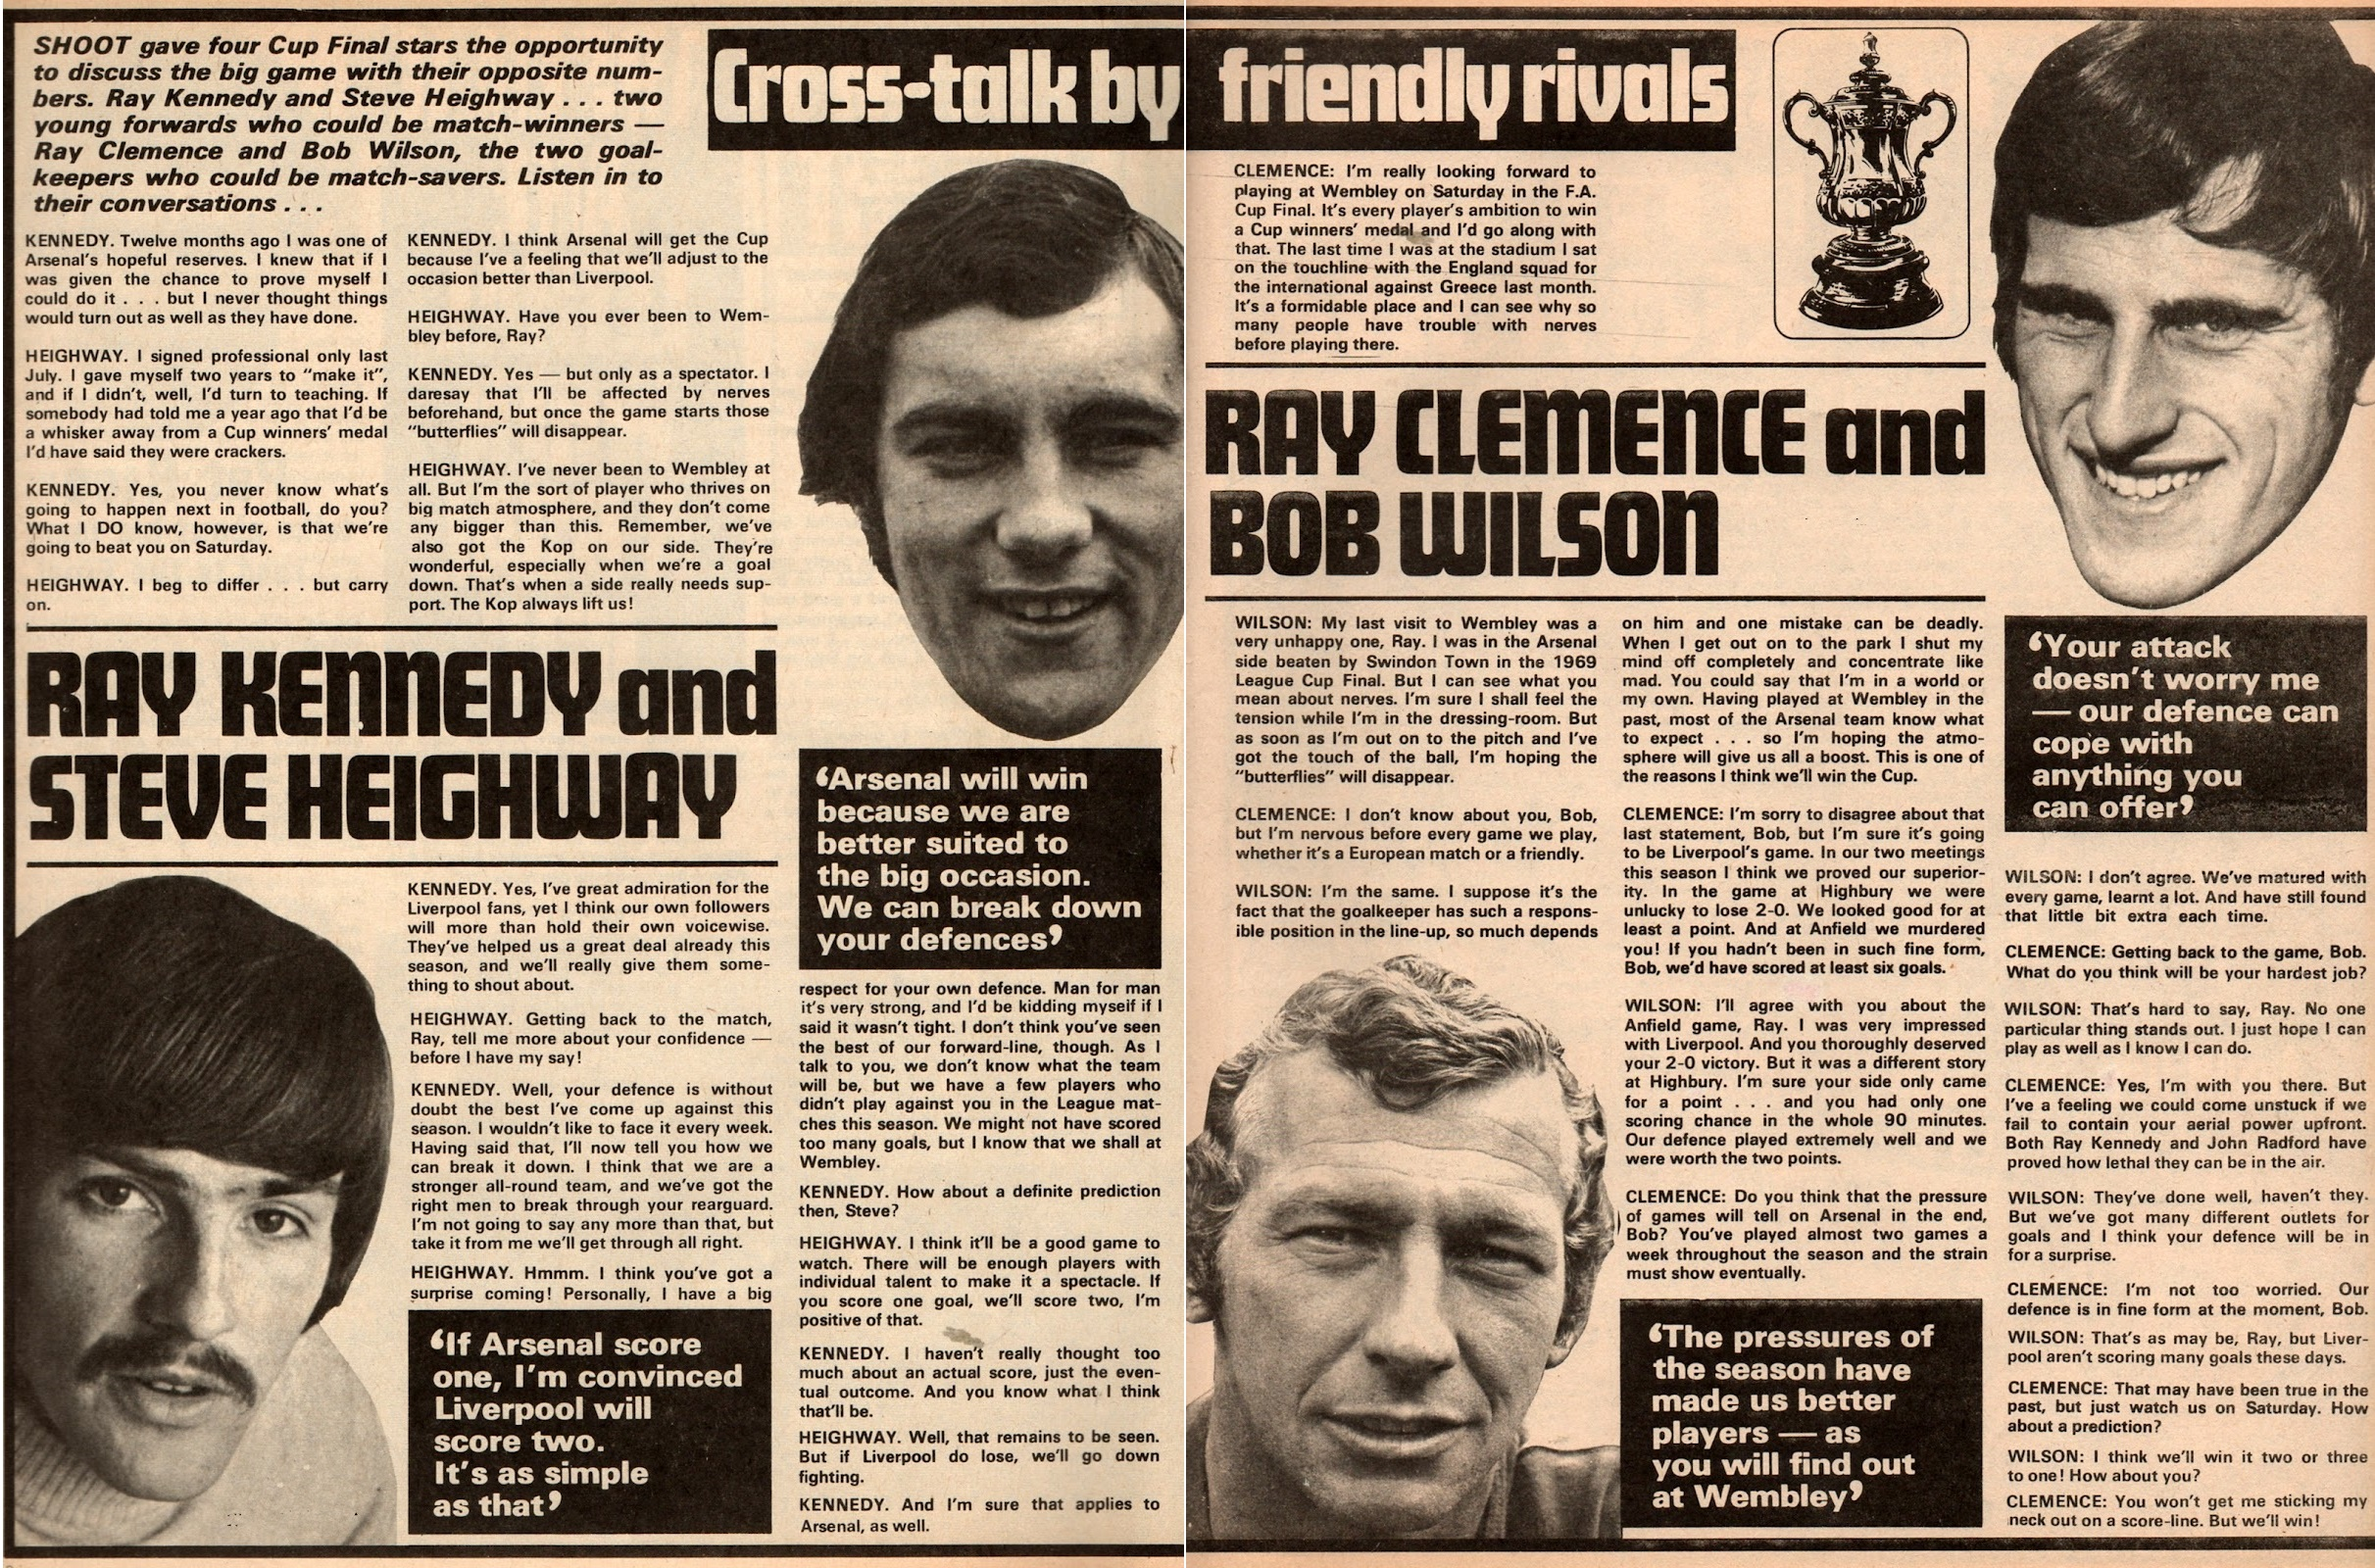 Cross-talk by friendly rivals - prior to the 1971 final